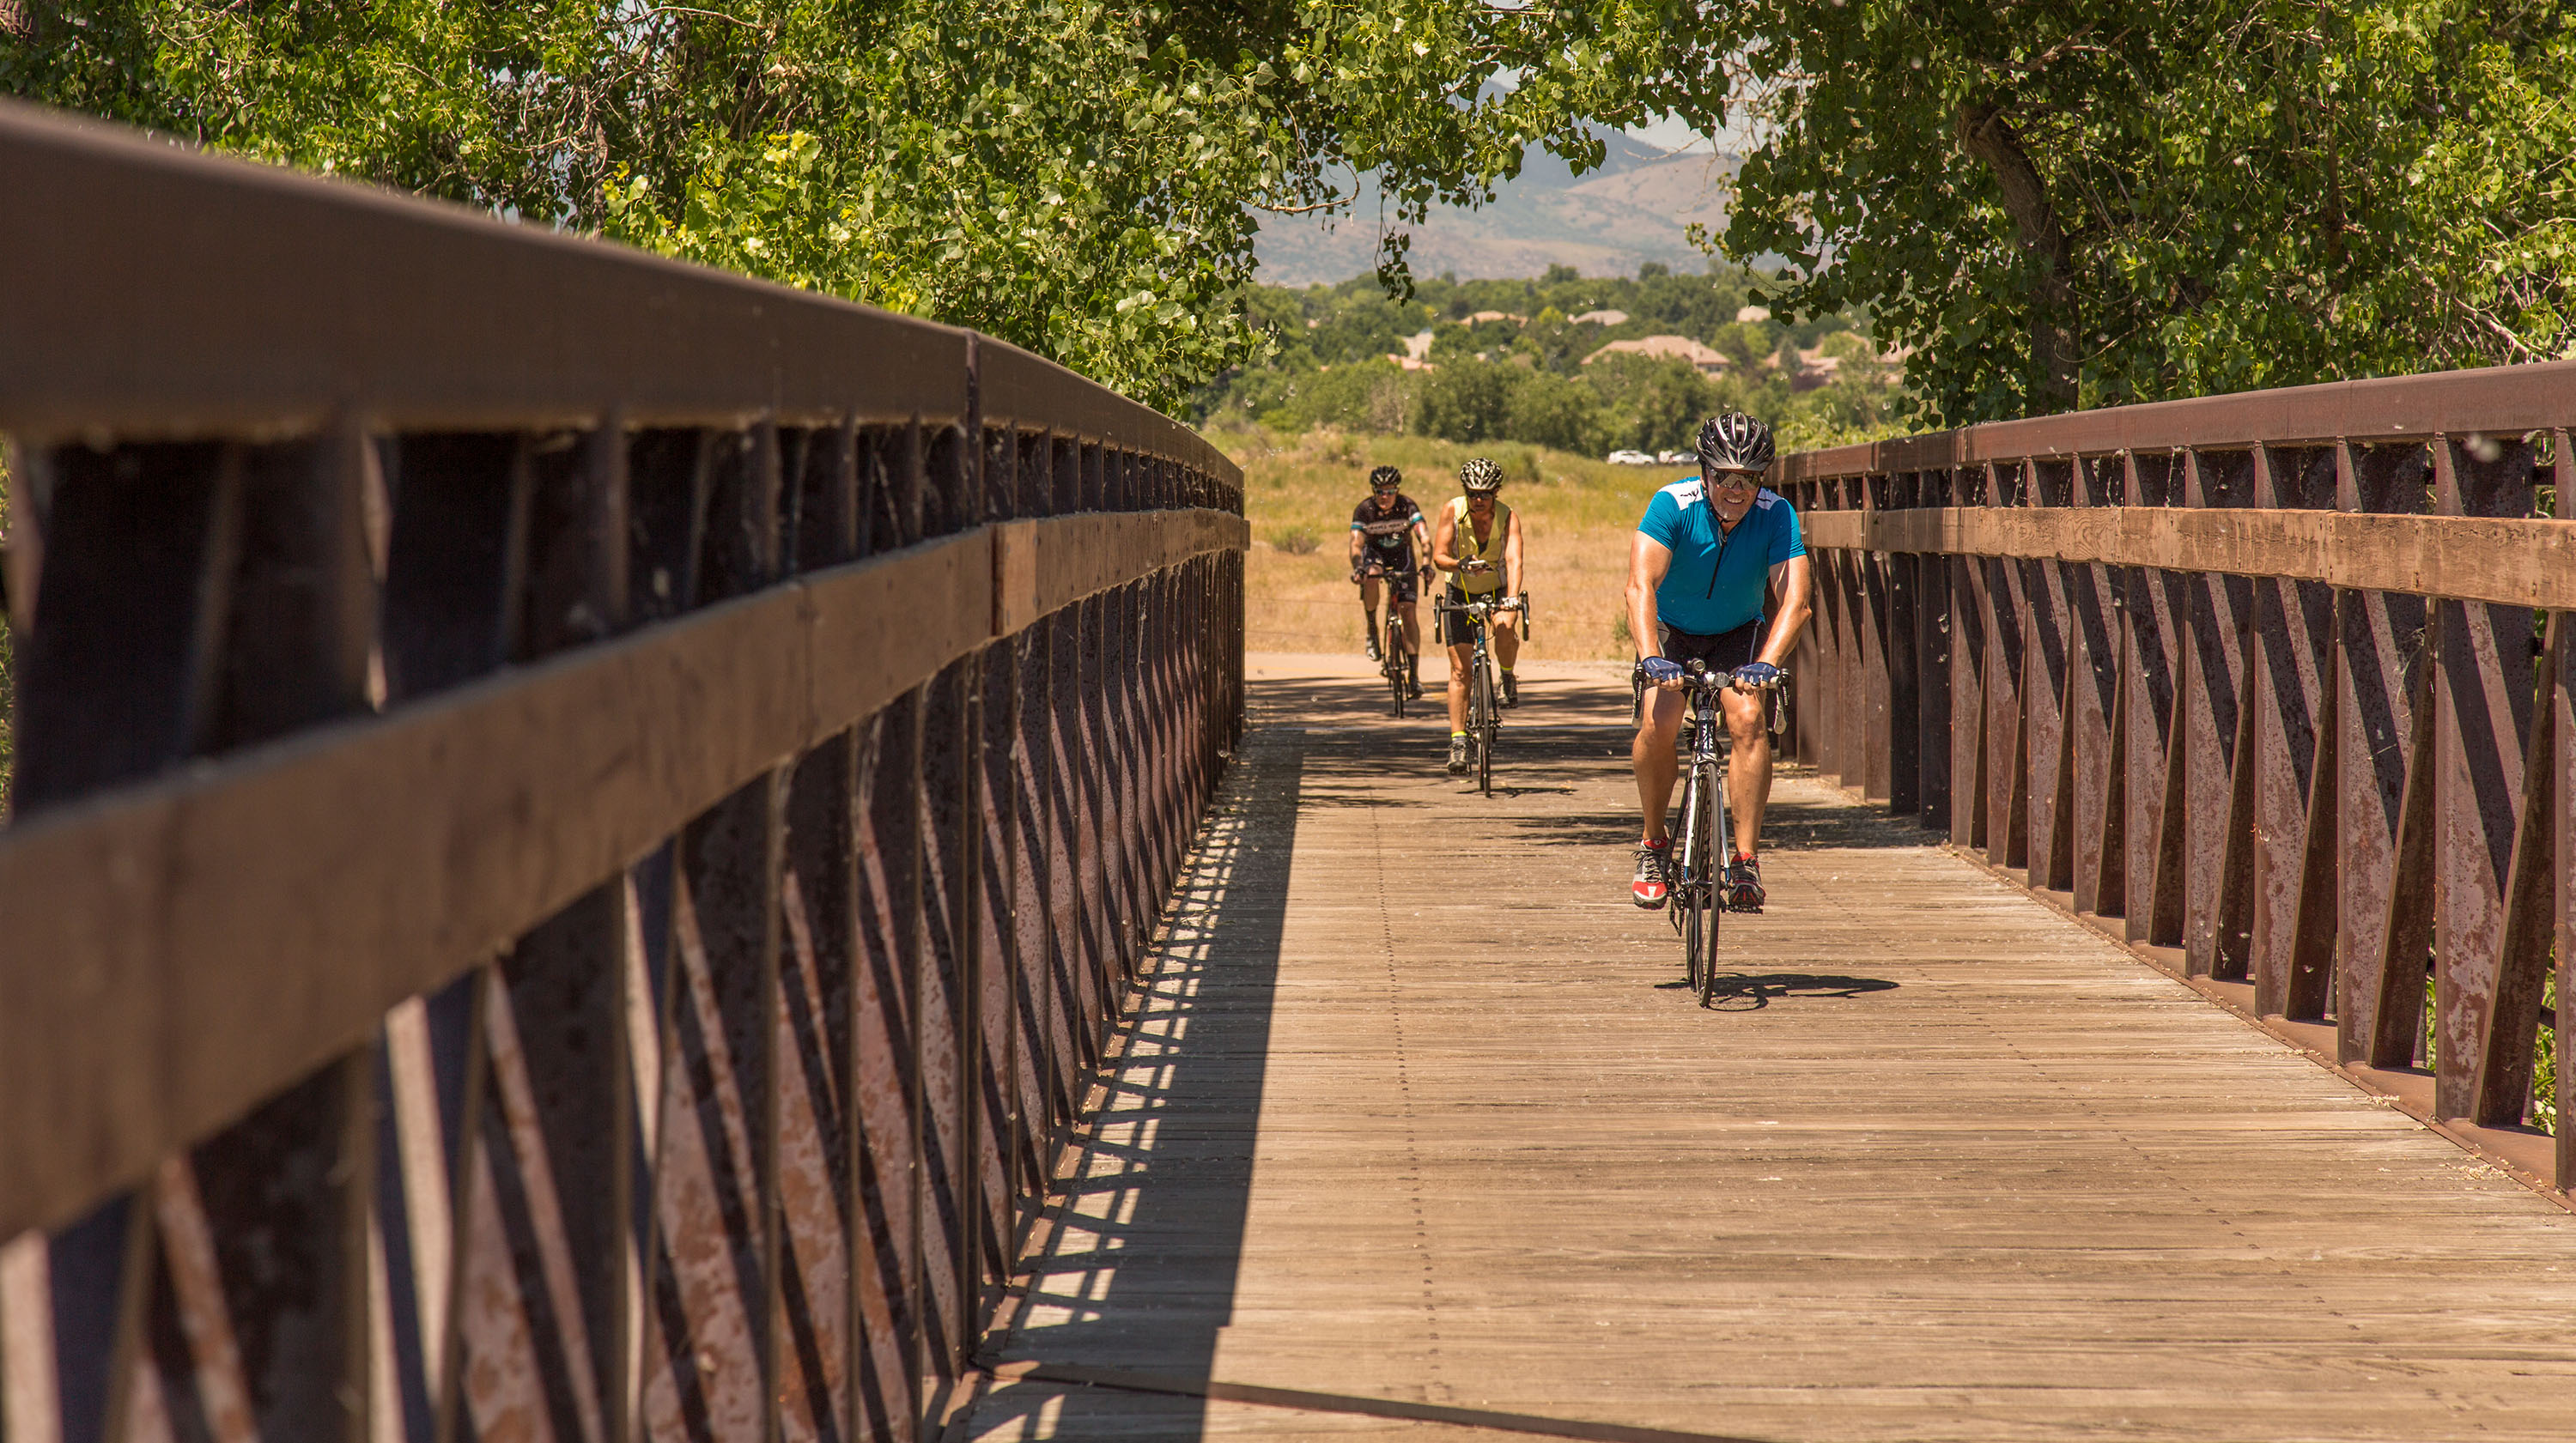 Cyclists Crossing Bridge